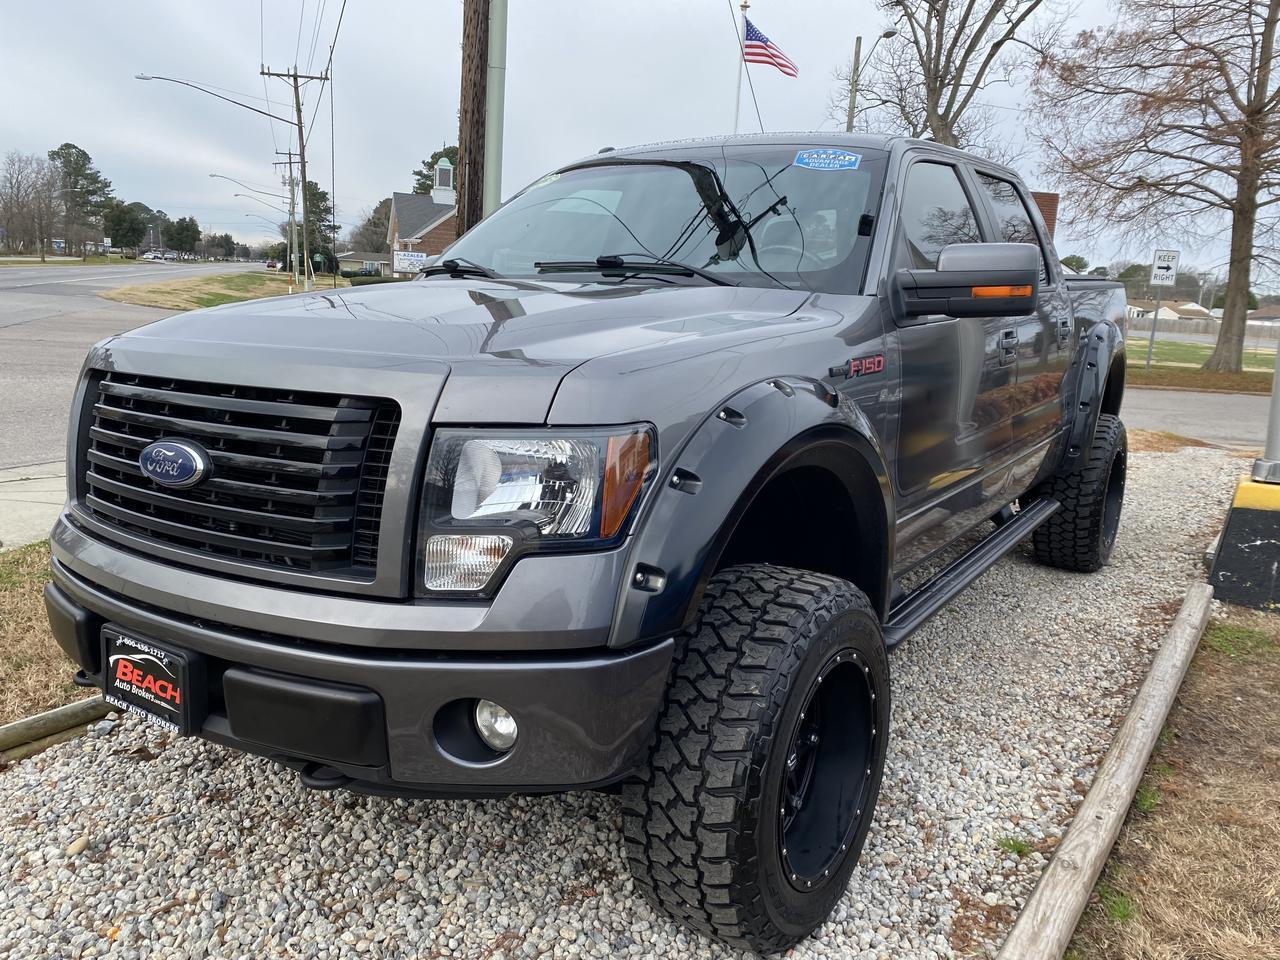 2012 FORD F-150 FX4 SUPERCREW 4X4, WARRANTY, LEATHER, NAV, SUNROOF, HEATED/COOLED SEATS, BACKUP CAM, CLEAN CARFAX! Norfolk VA